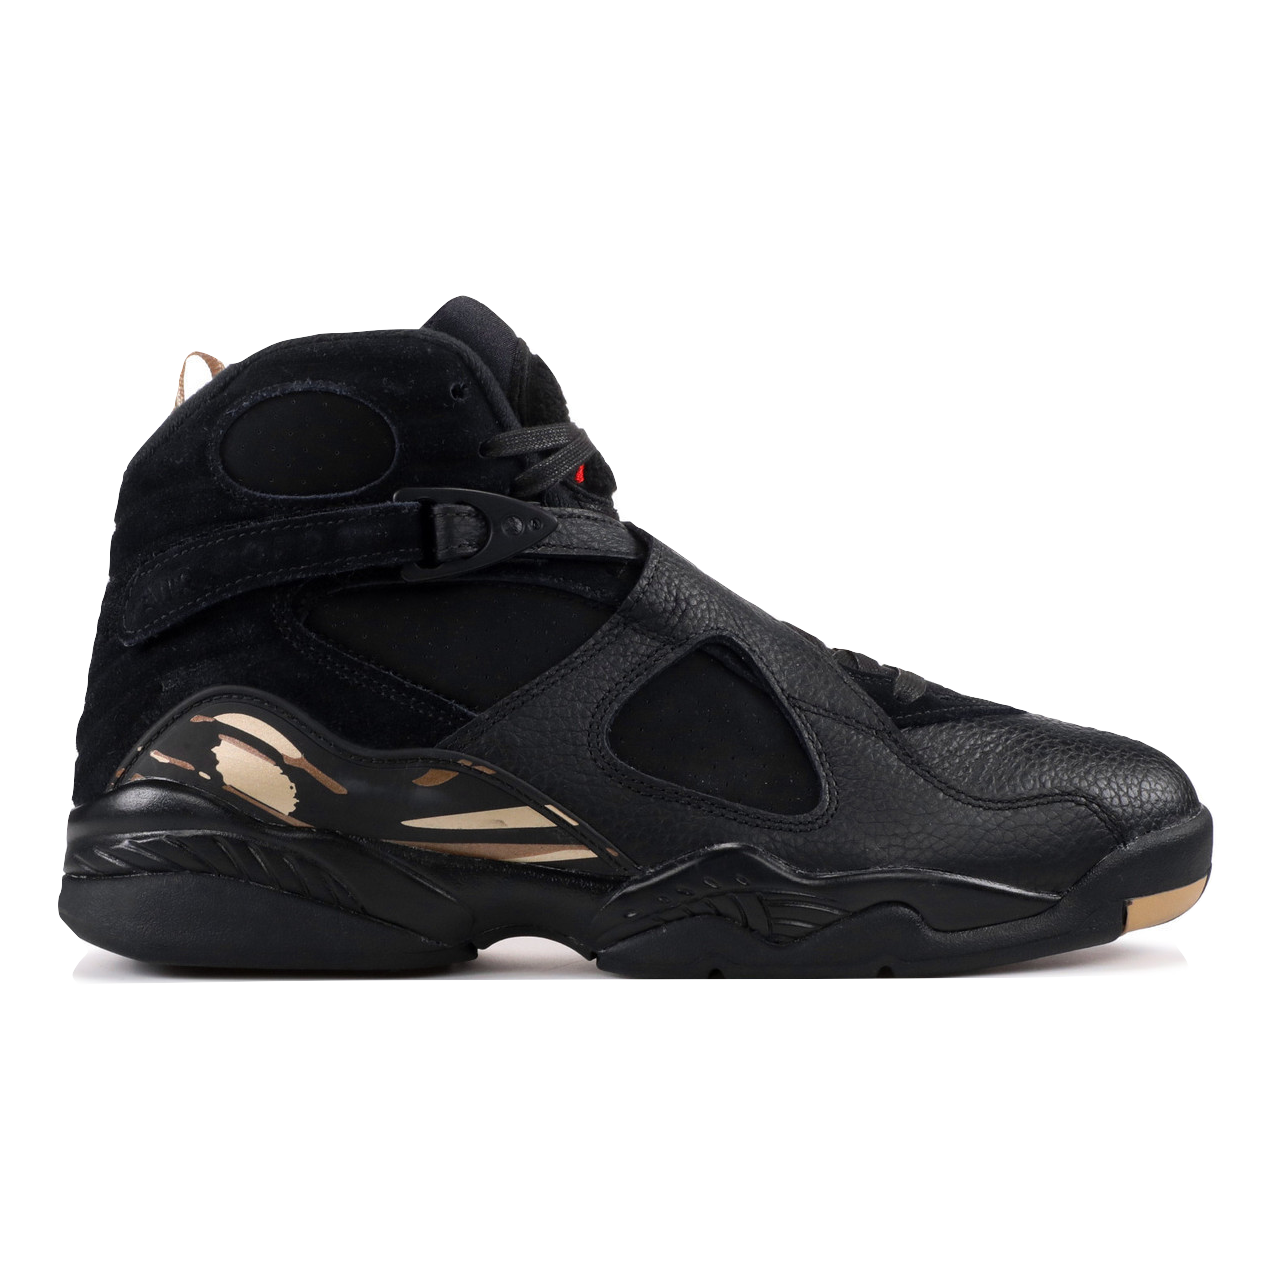 Air Jordan 8 Retro OVO - OVO Black